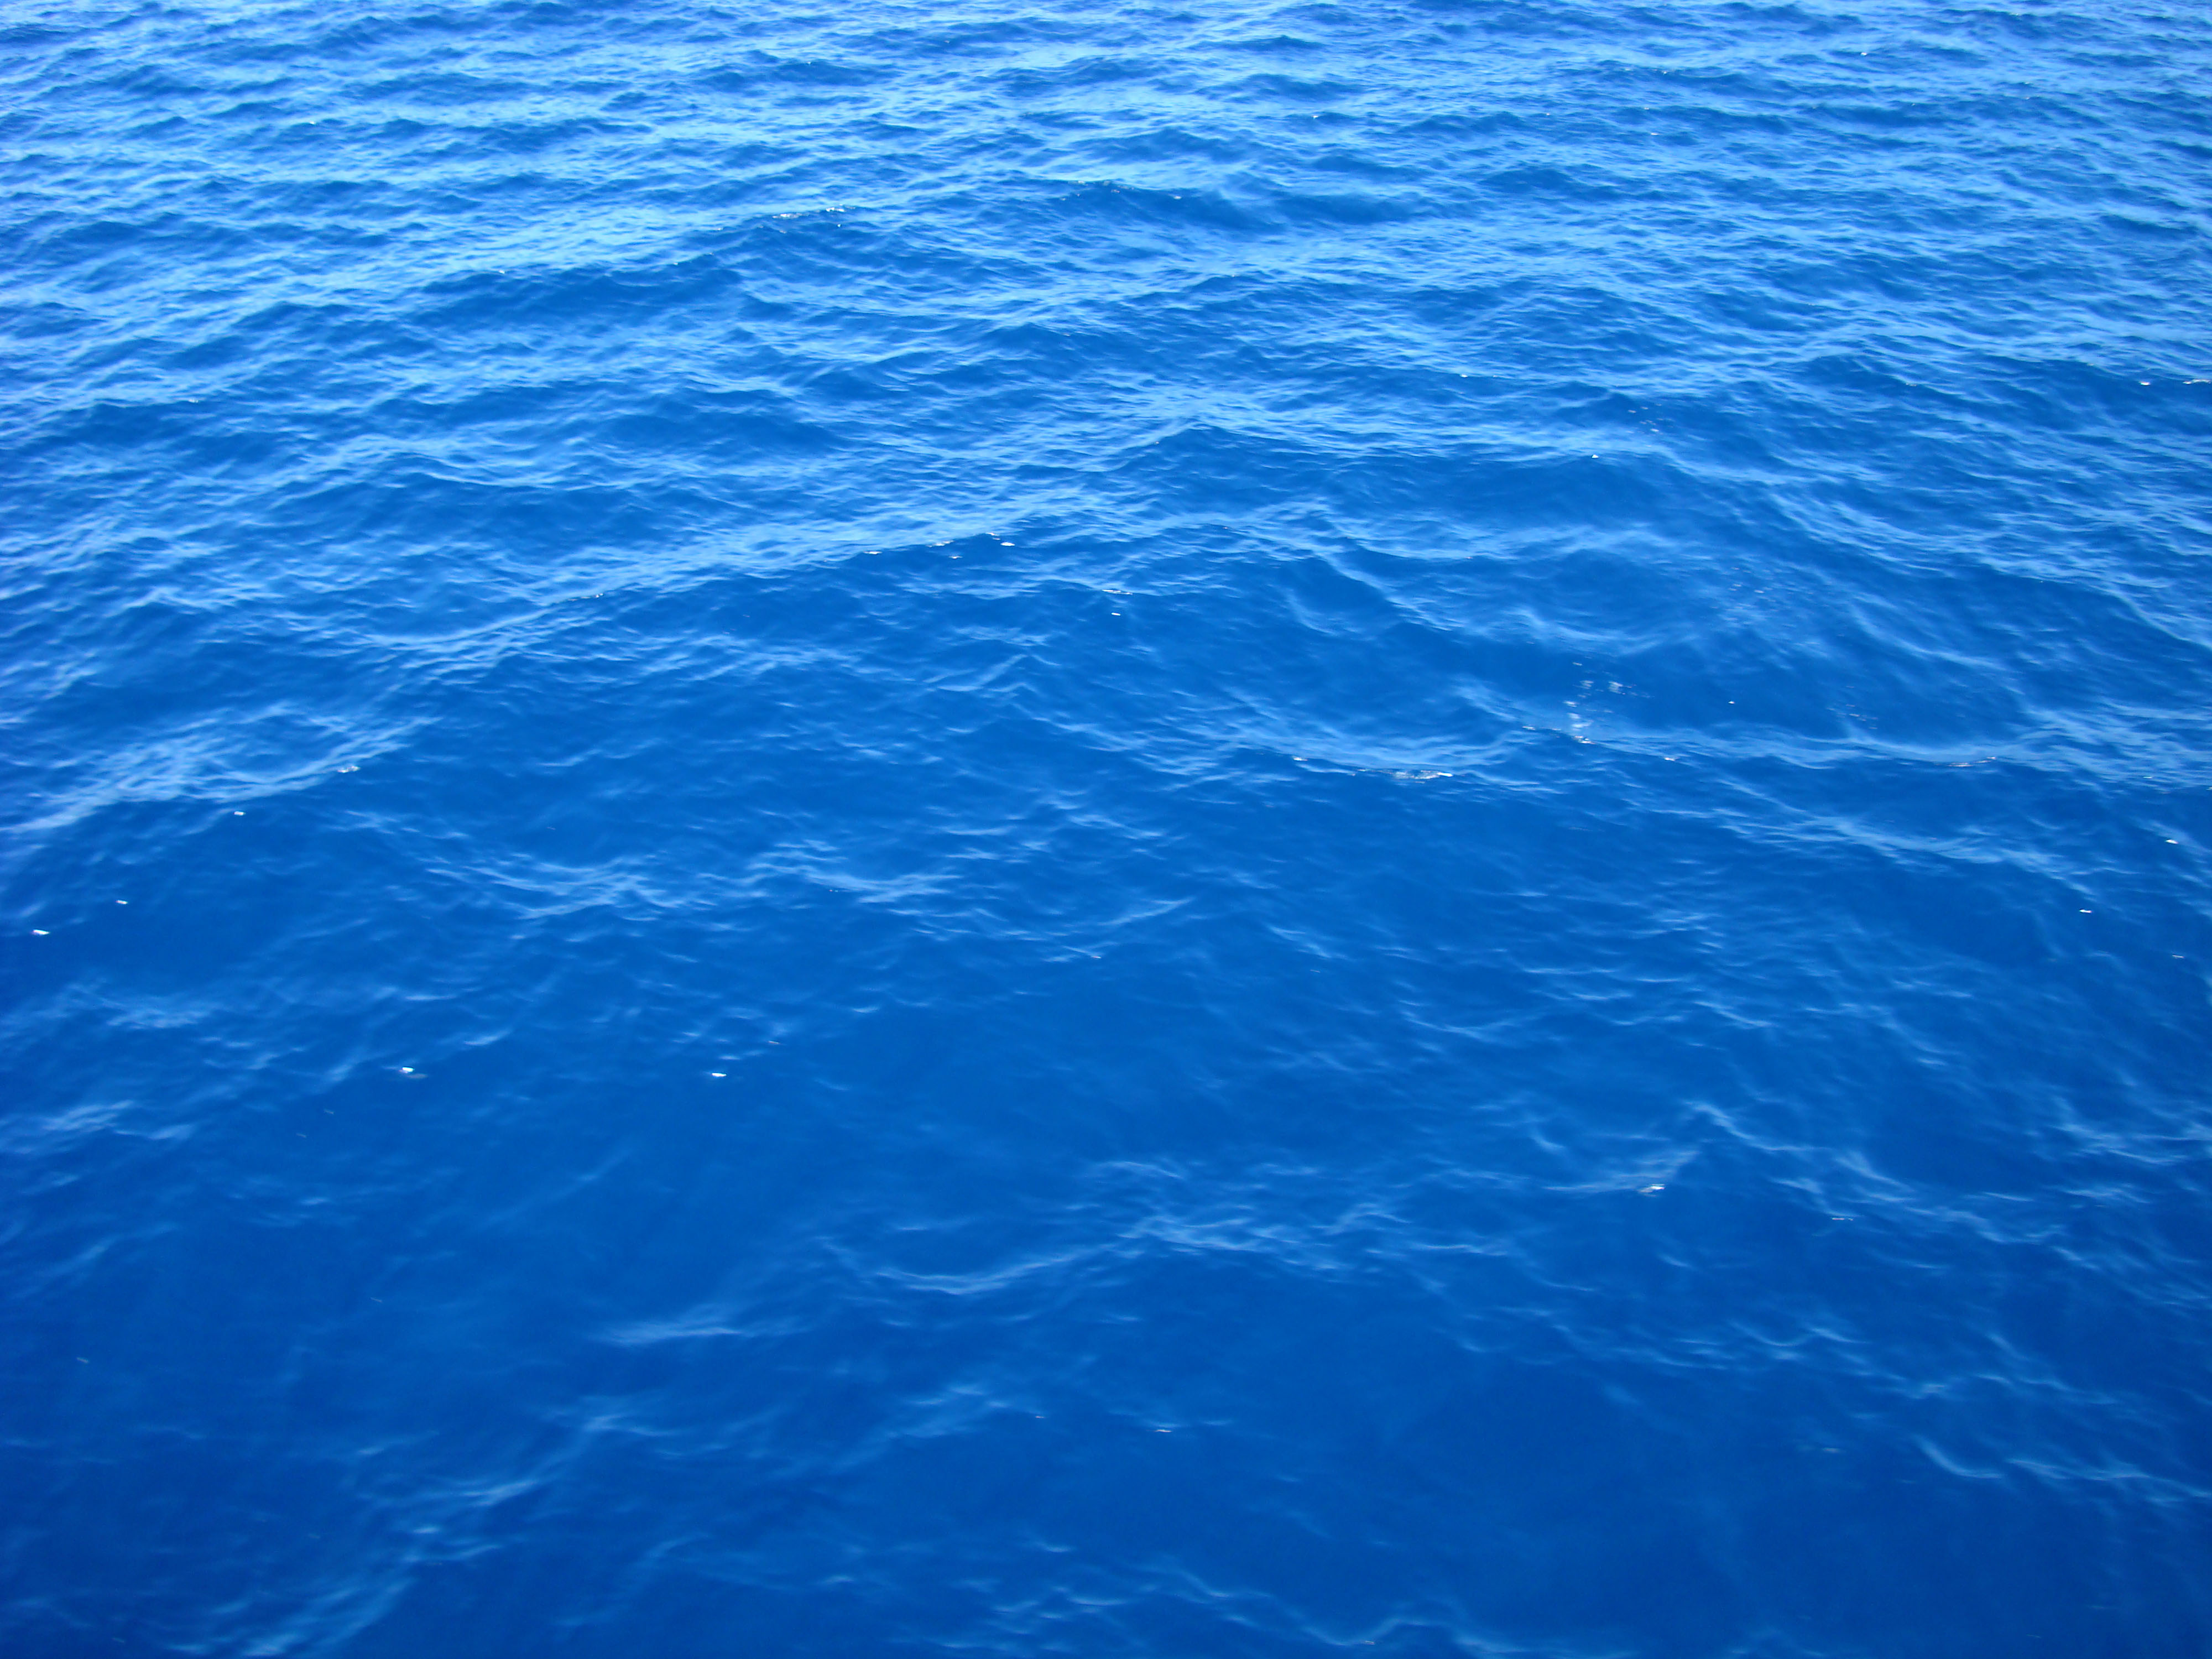 The oldest seawater chemically analyzed